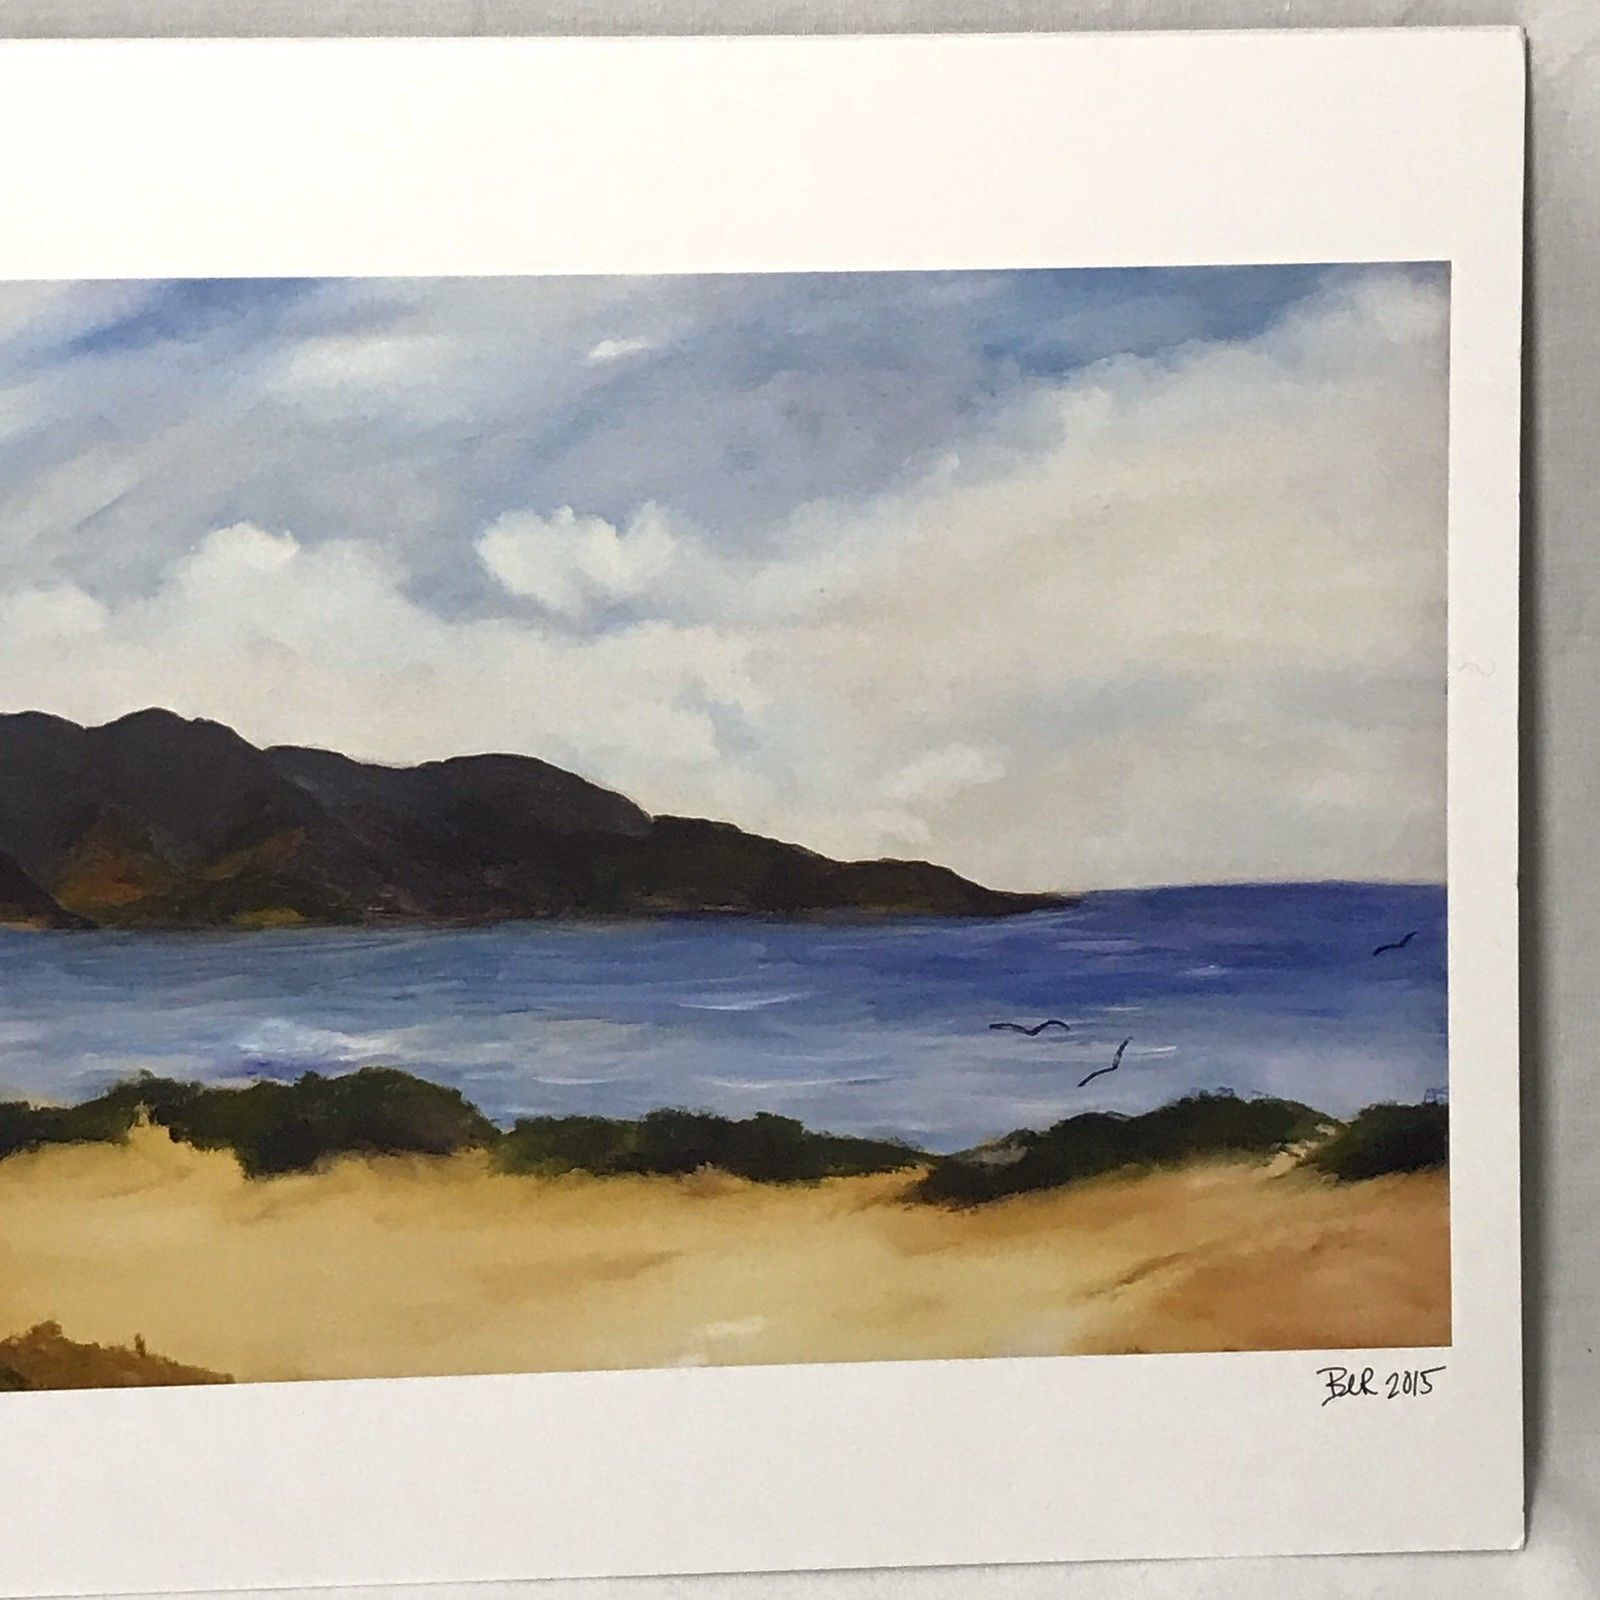 """Beach Ocean with Gulls and Mountains Art Print Signed BER 2015 11"""" x 17"""""""